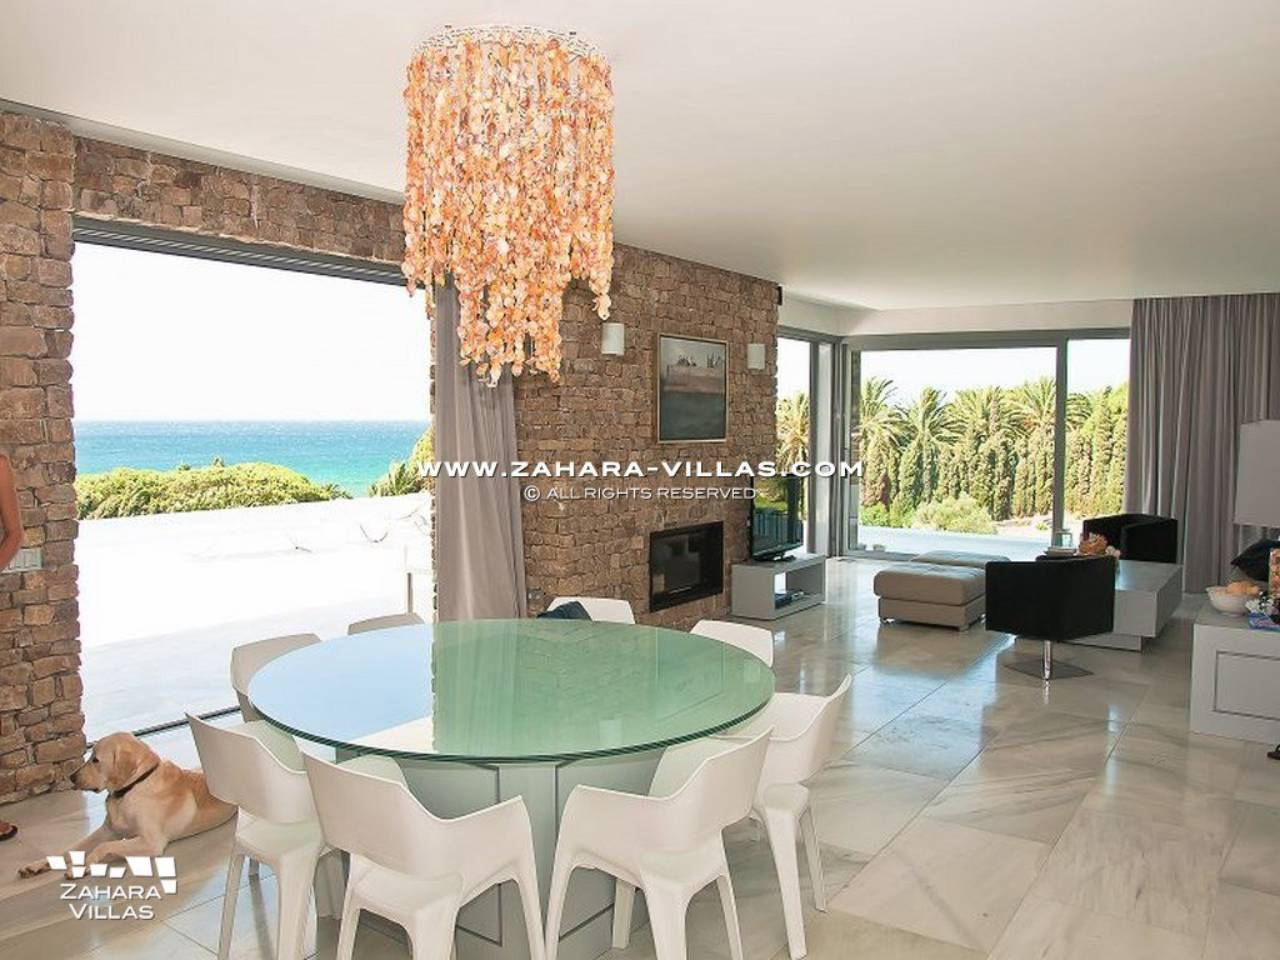 Imagen 8 de Wonderful Villa for sale with sea views in the beach Los Alemanes